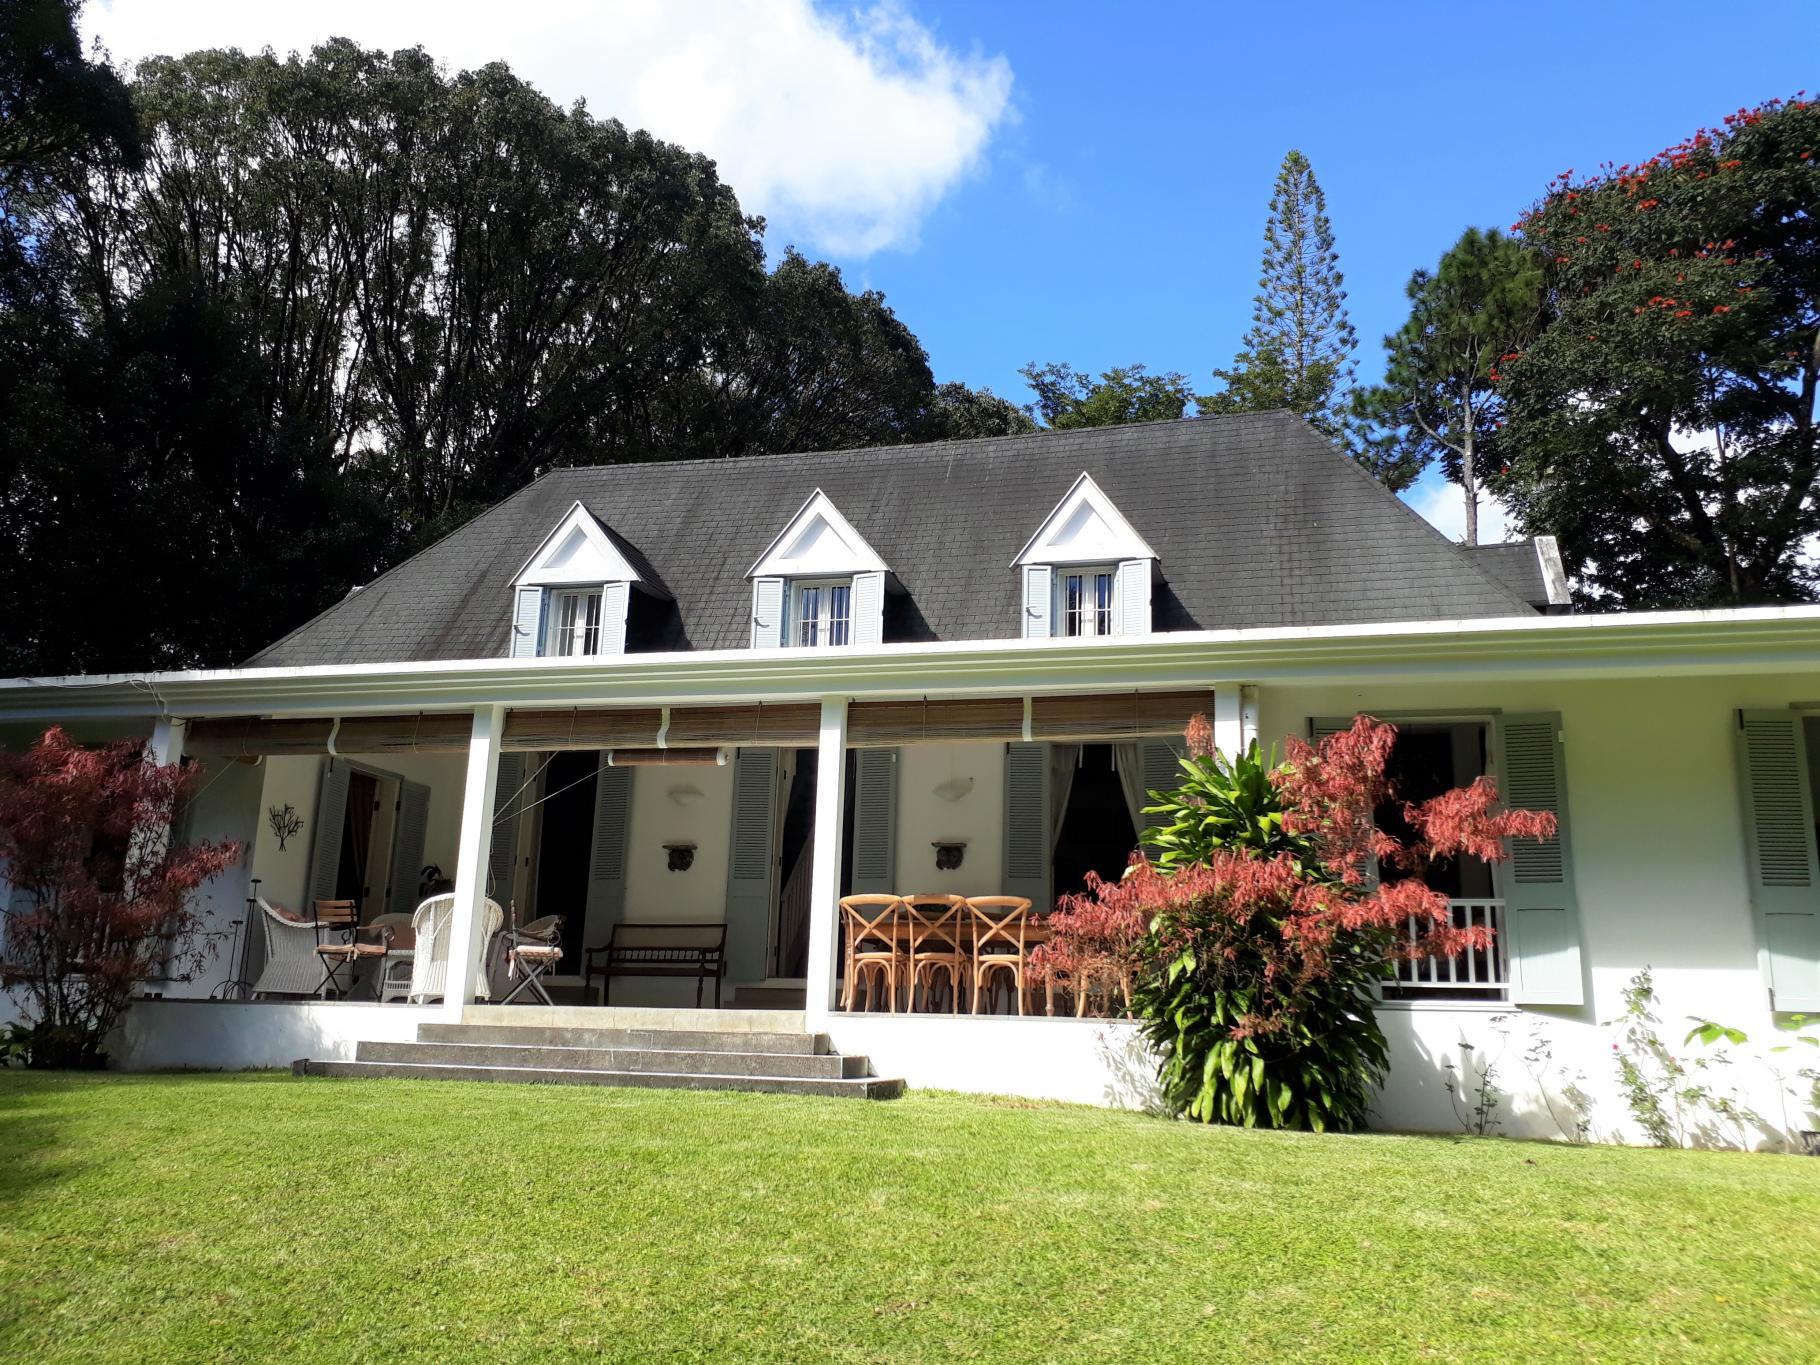 FLOREAL- Colonial style house on a plot of 60 perches